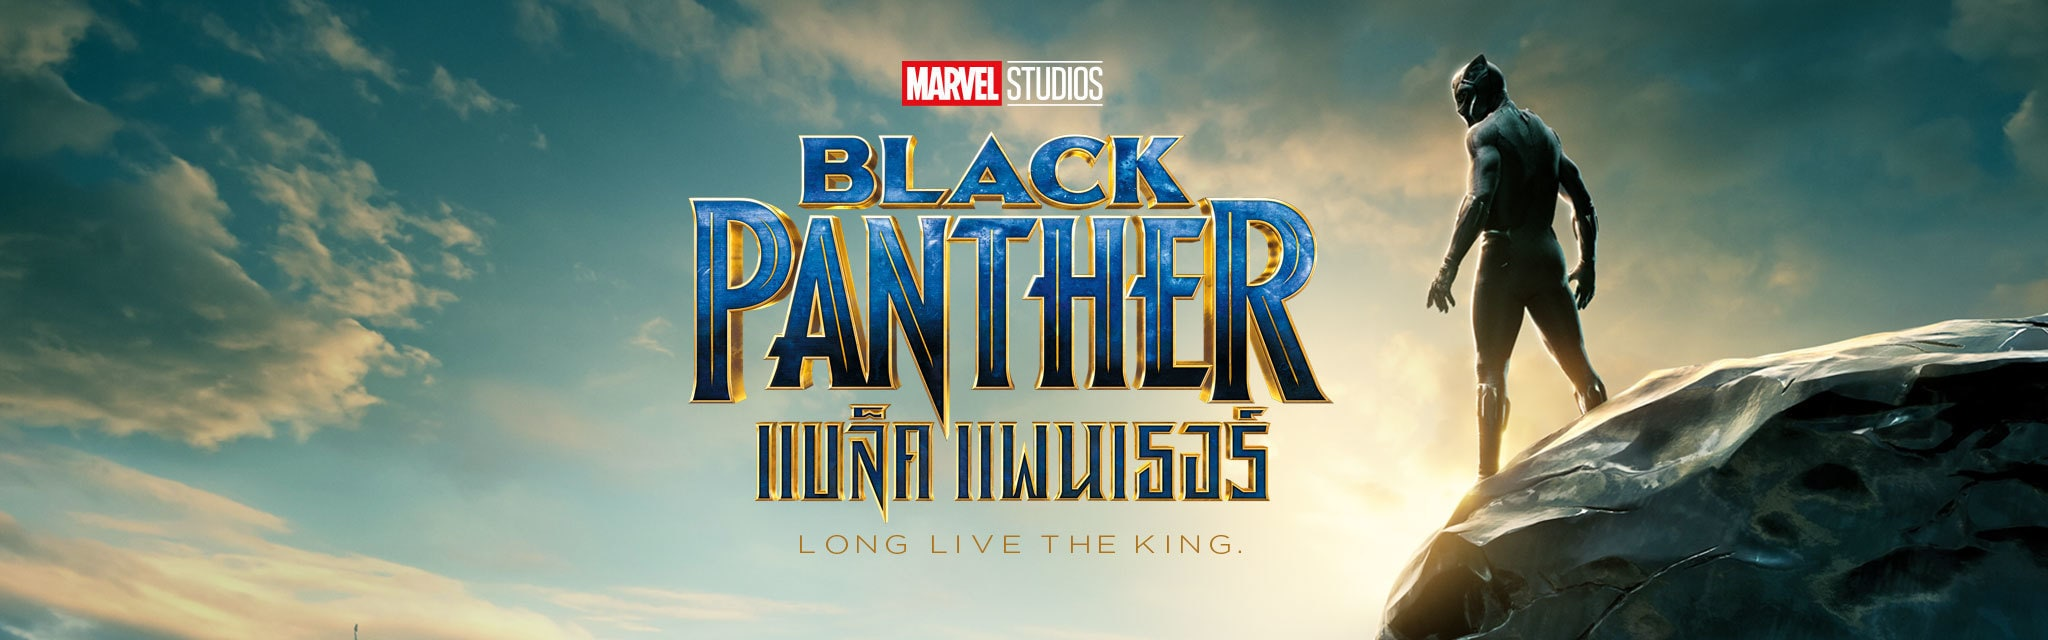 The Black Panther - In Cinemas soon - TH